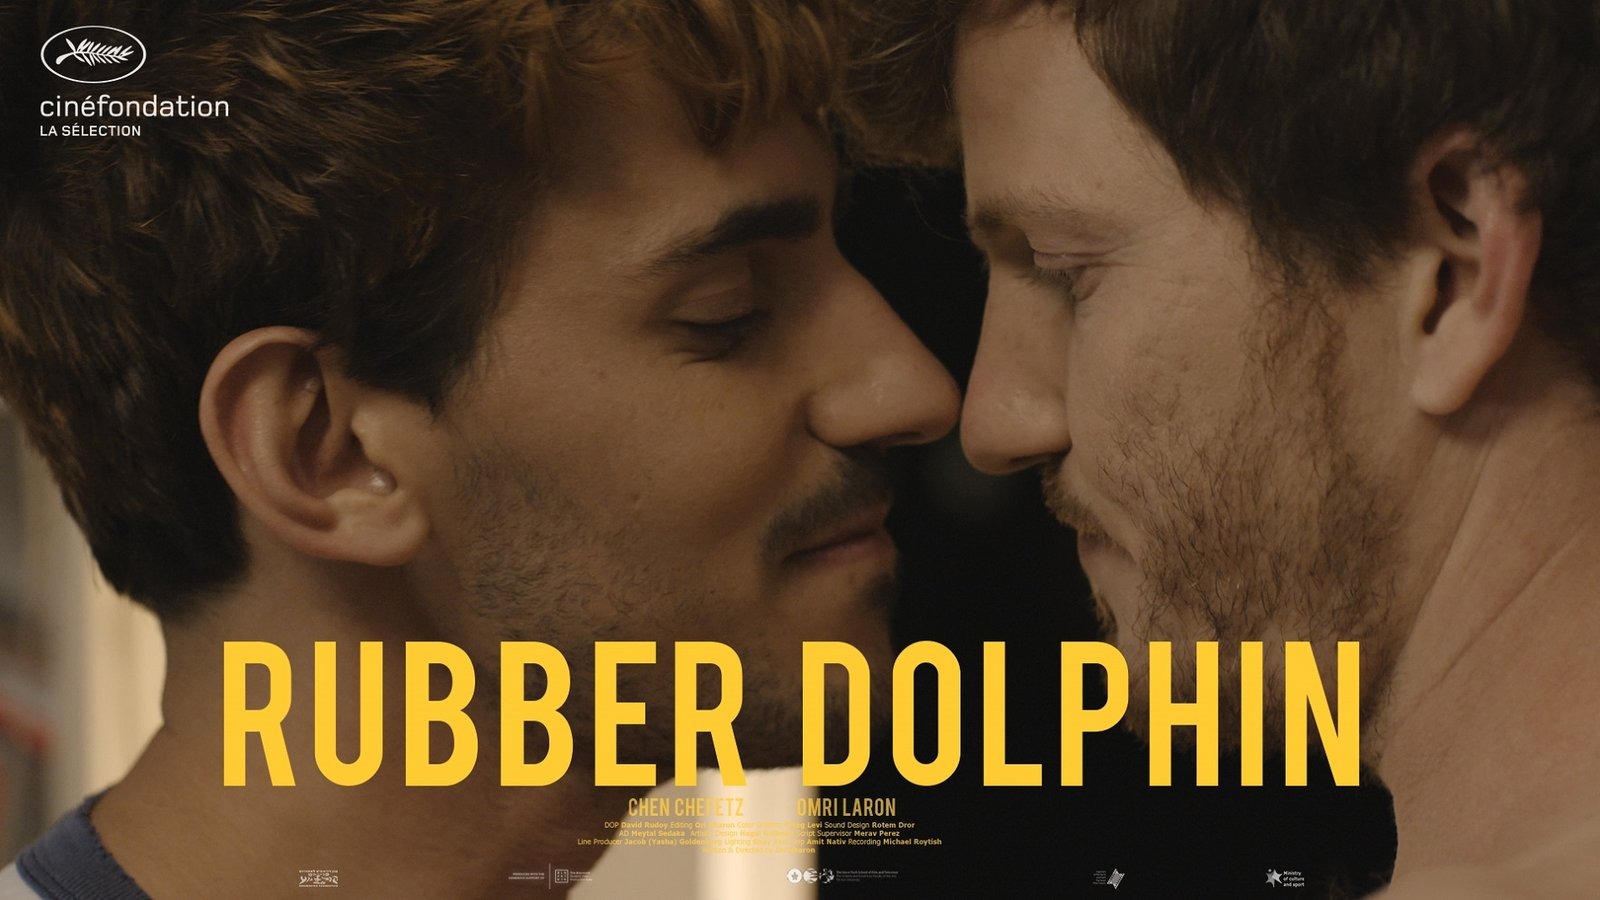 Rubber Dolphin